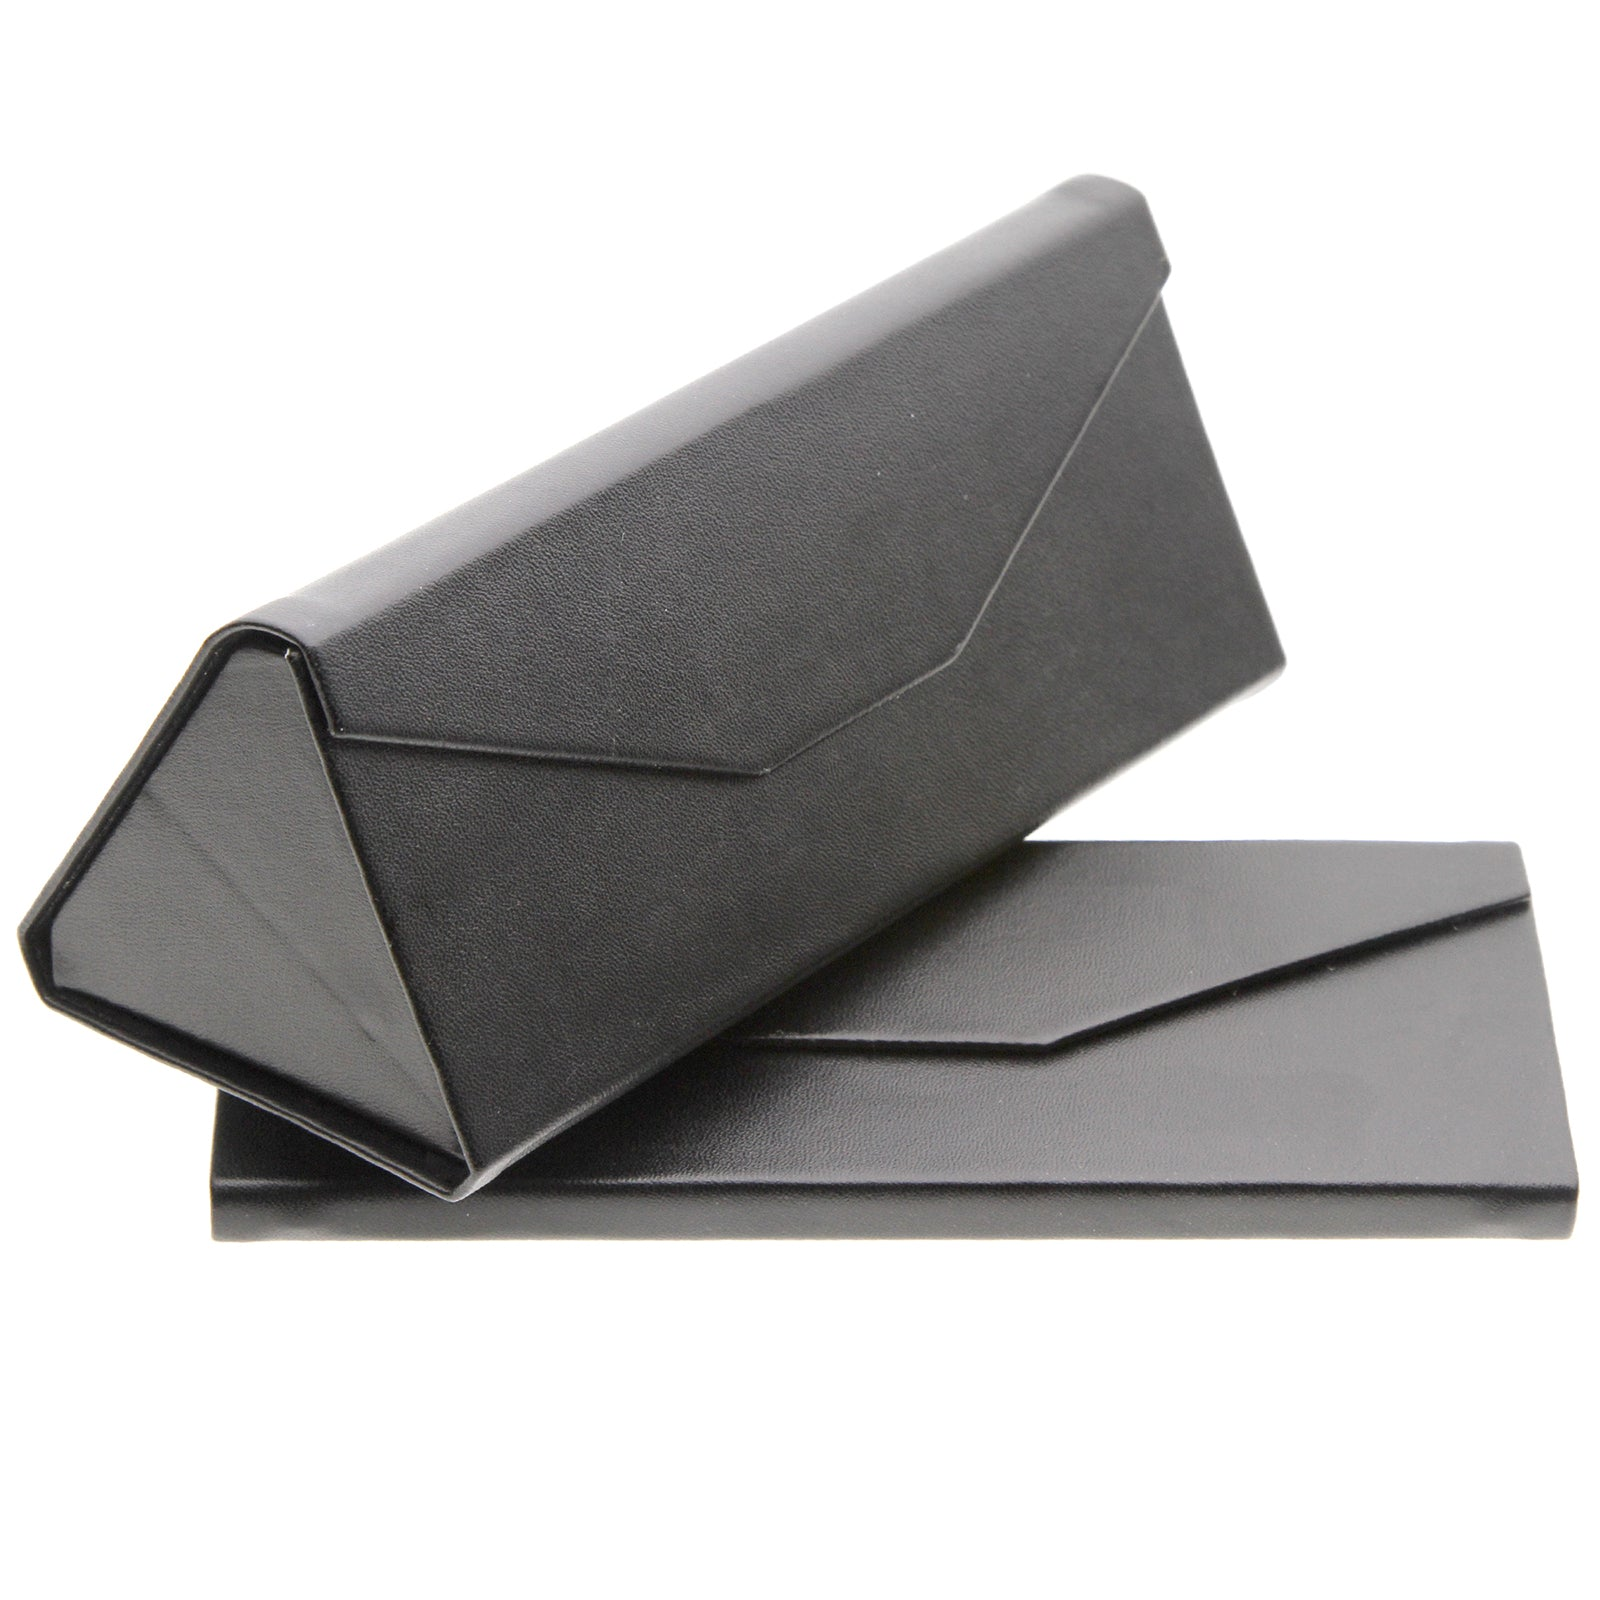 Lucklystar/® Creative Triangular Form Case for Folding Glasses Case Sunglasses Storage Box